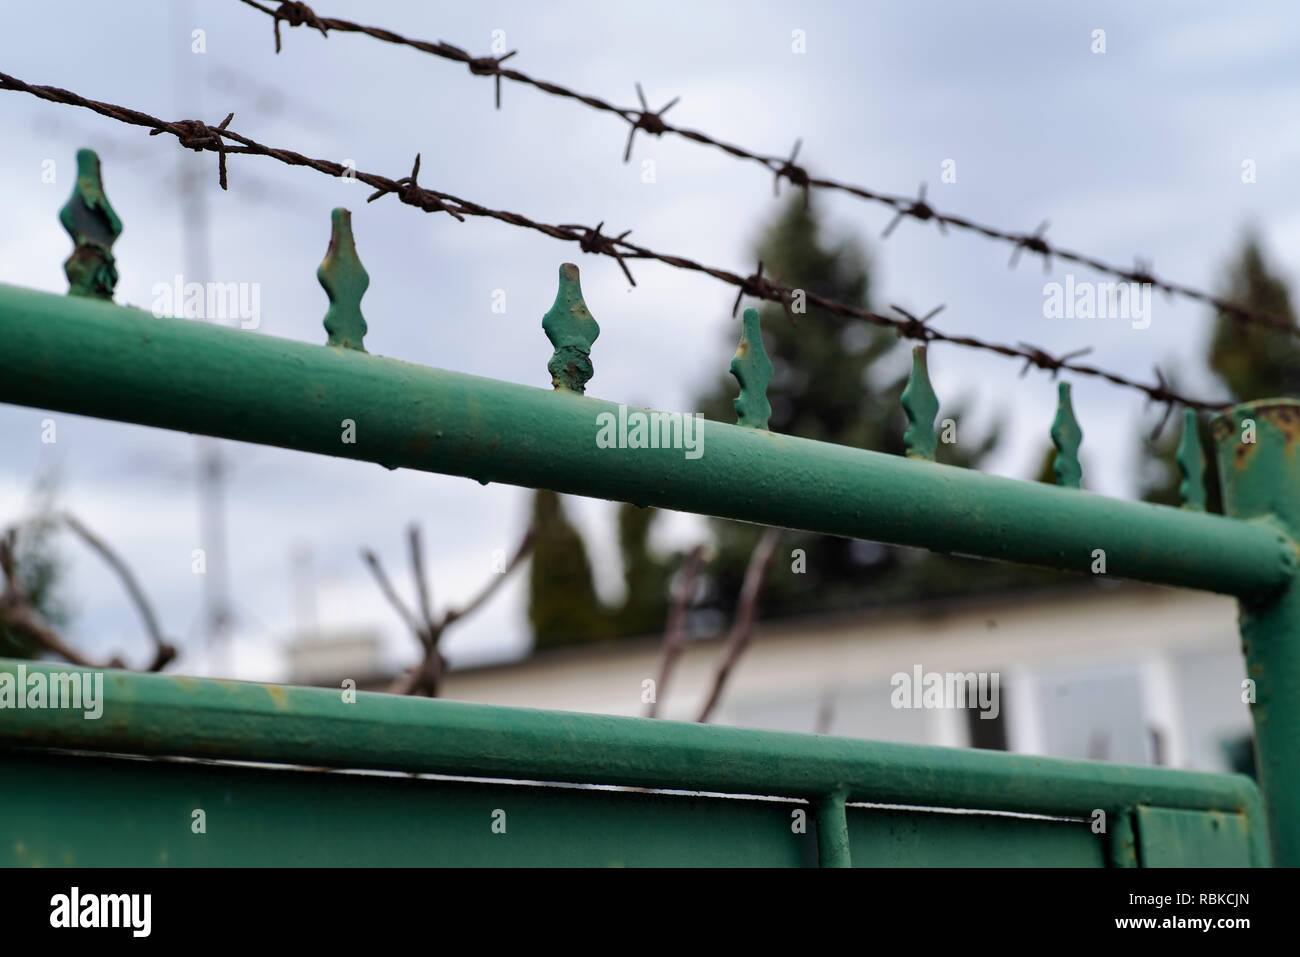 Barbed wire on the fence.Metal fence with barbed wire, guarded object. - Stock Image